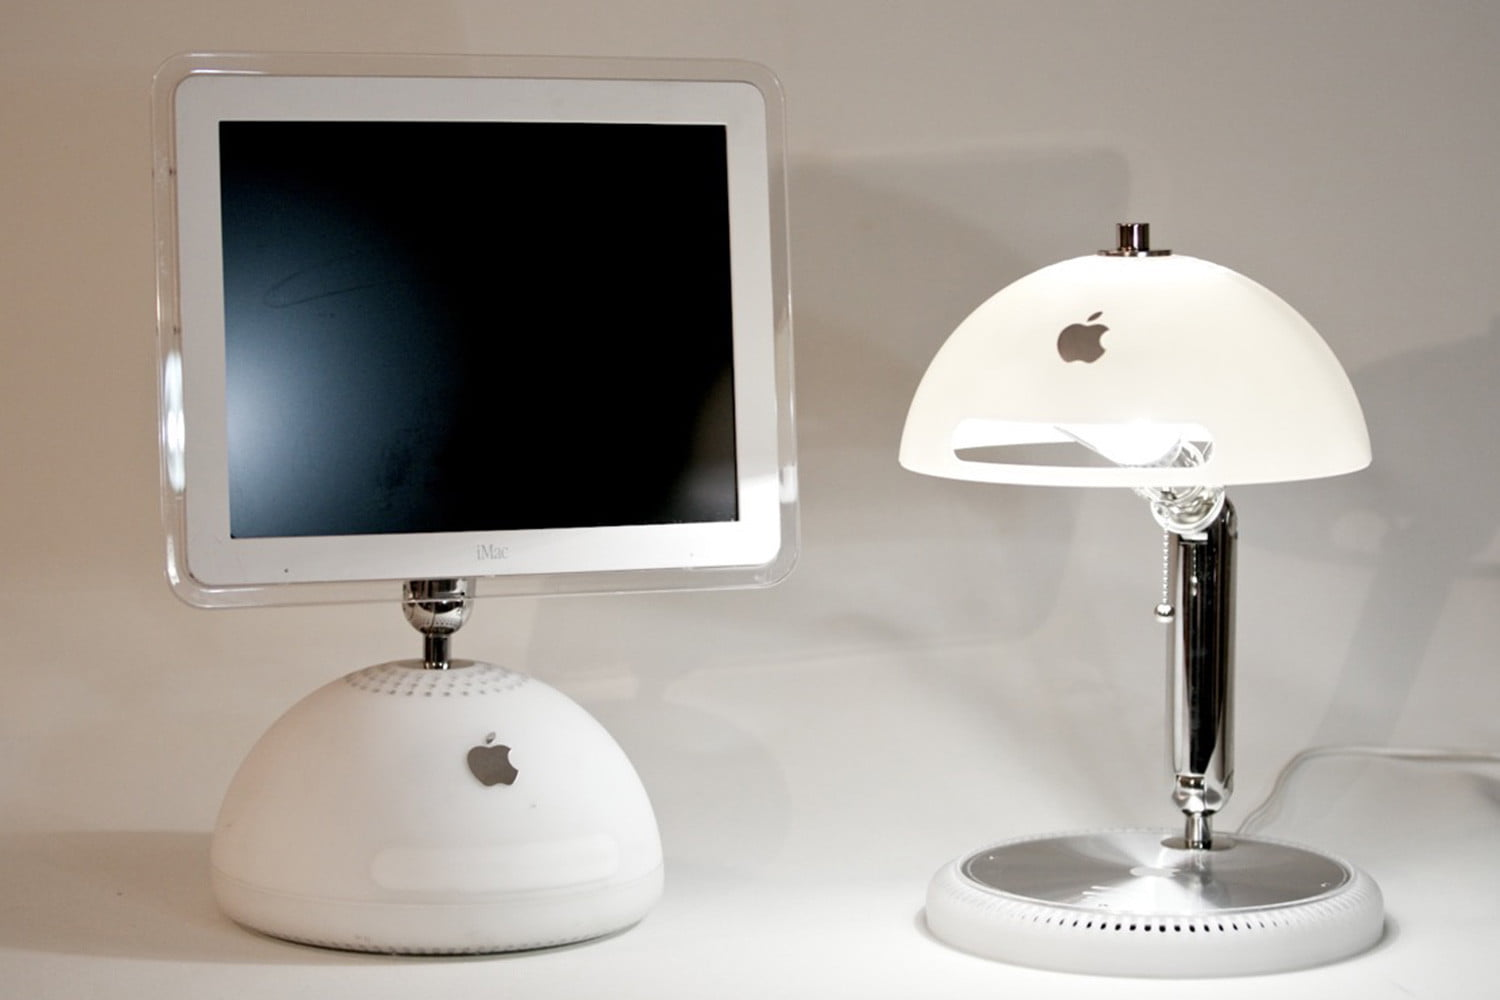 ilamp desktop lamps made from old imacs ilamps 004